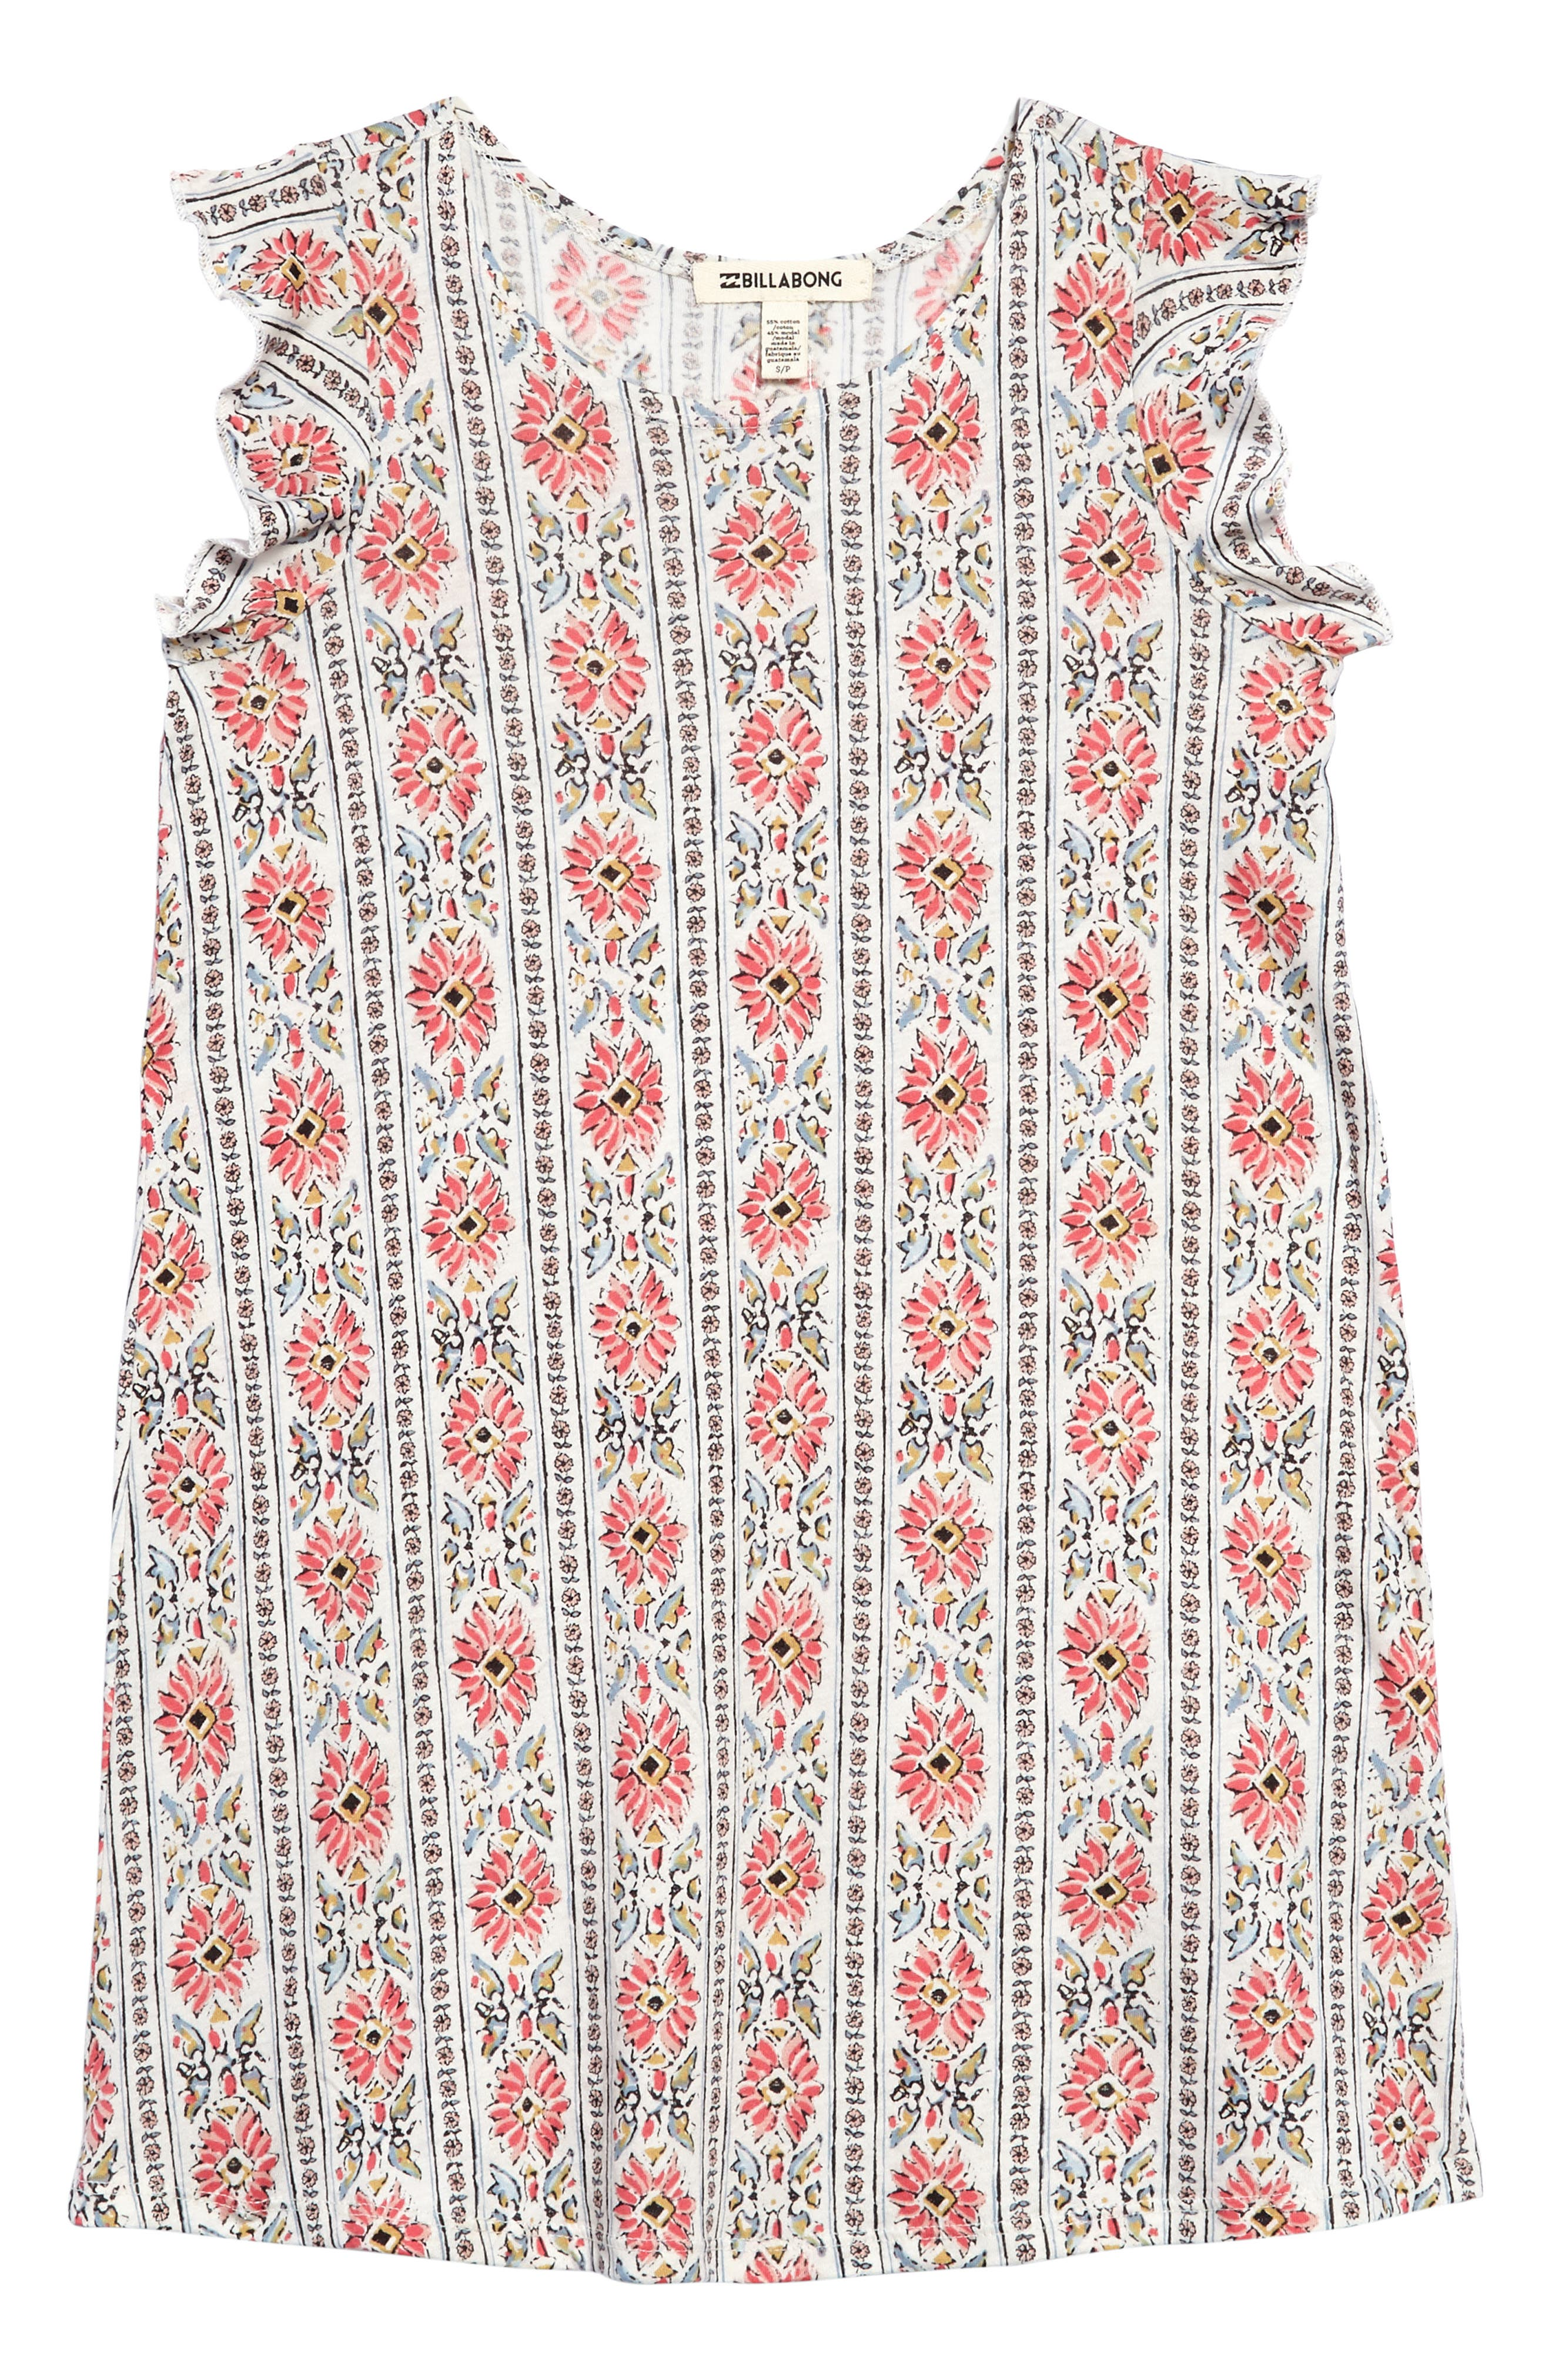 Sunstruck Print Dress,                             Main thumbnail 1, color,                             653